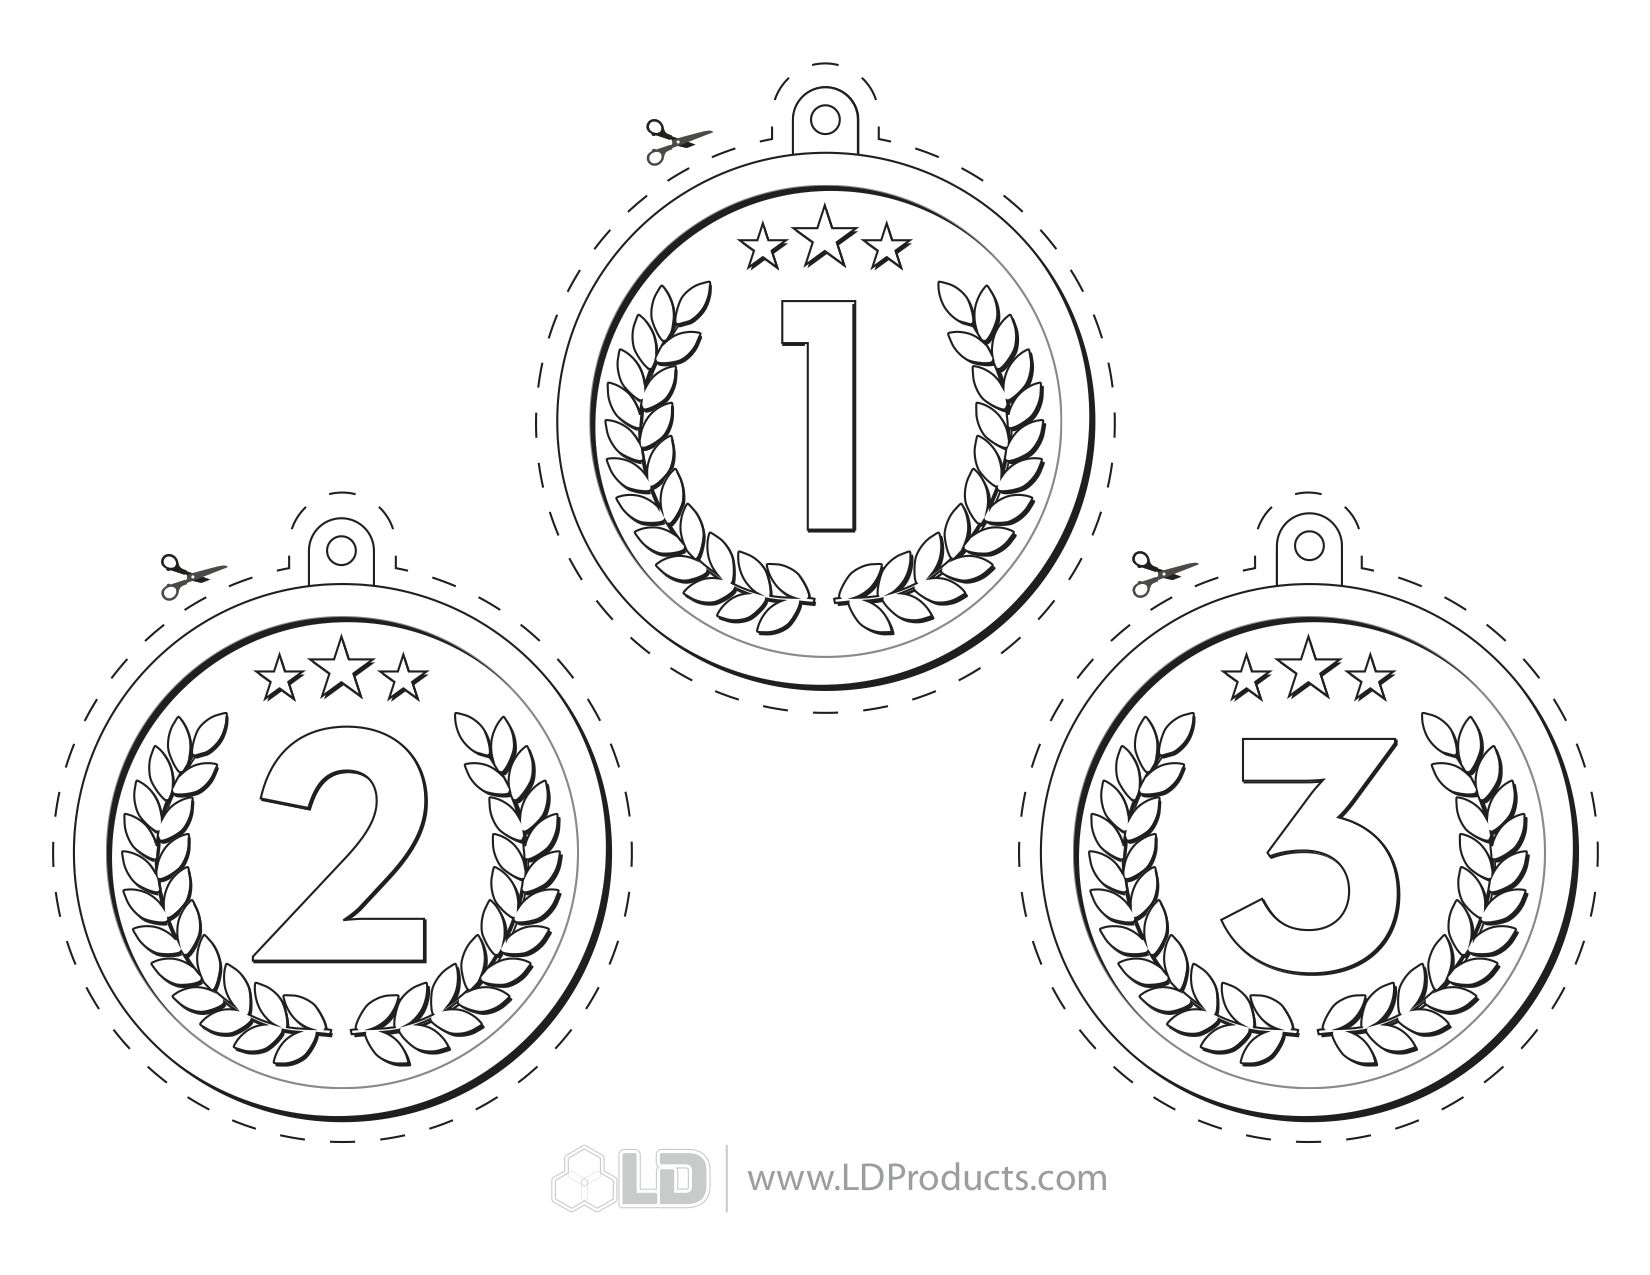 gold medal printable olympic medal coloring page sketch coloring page printable gold medal